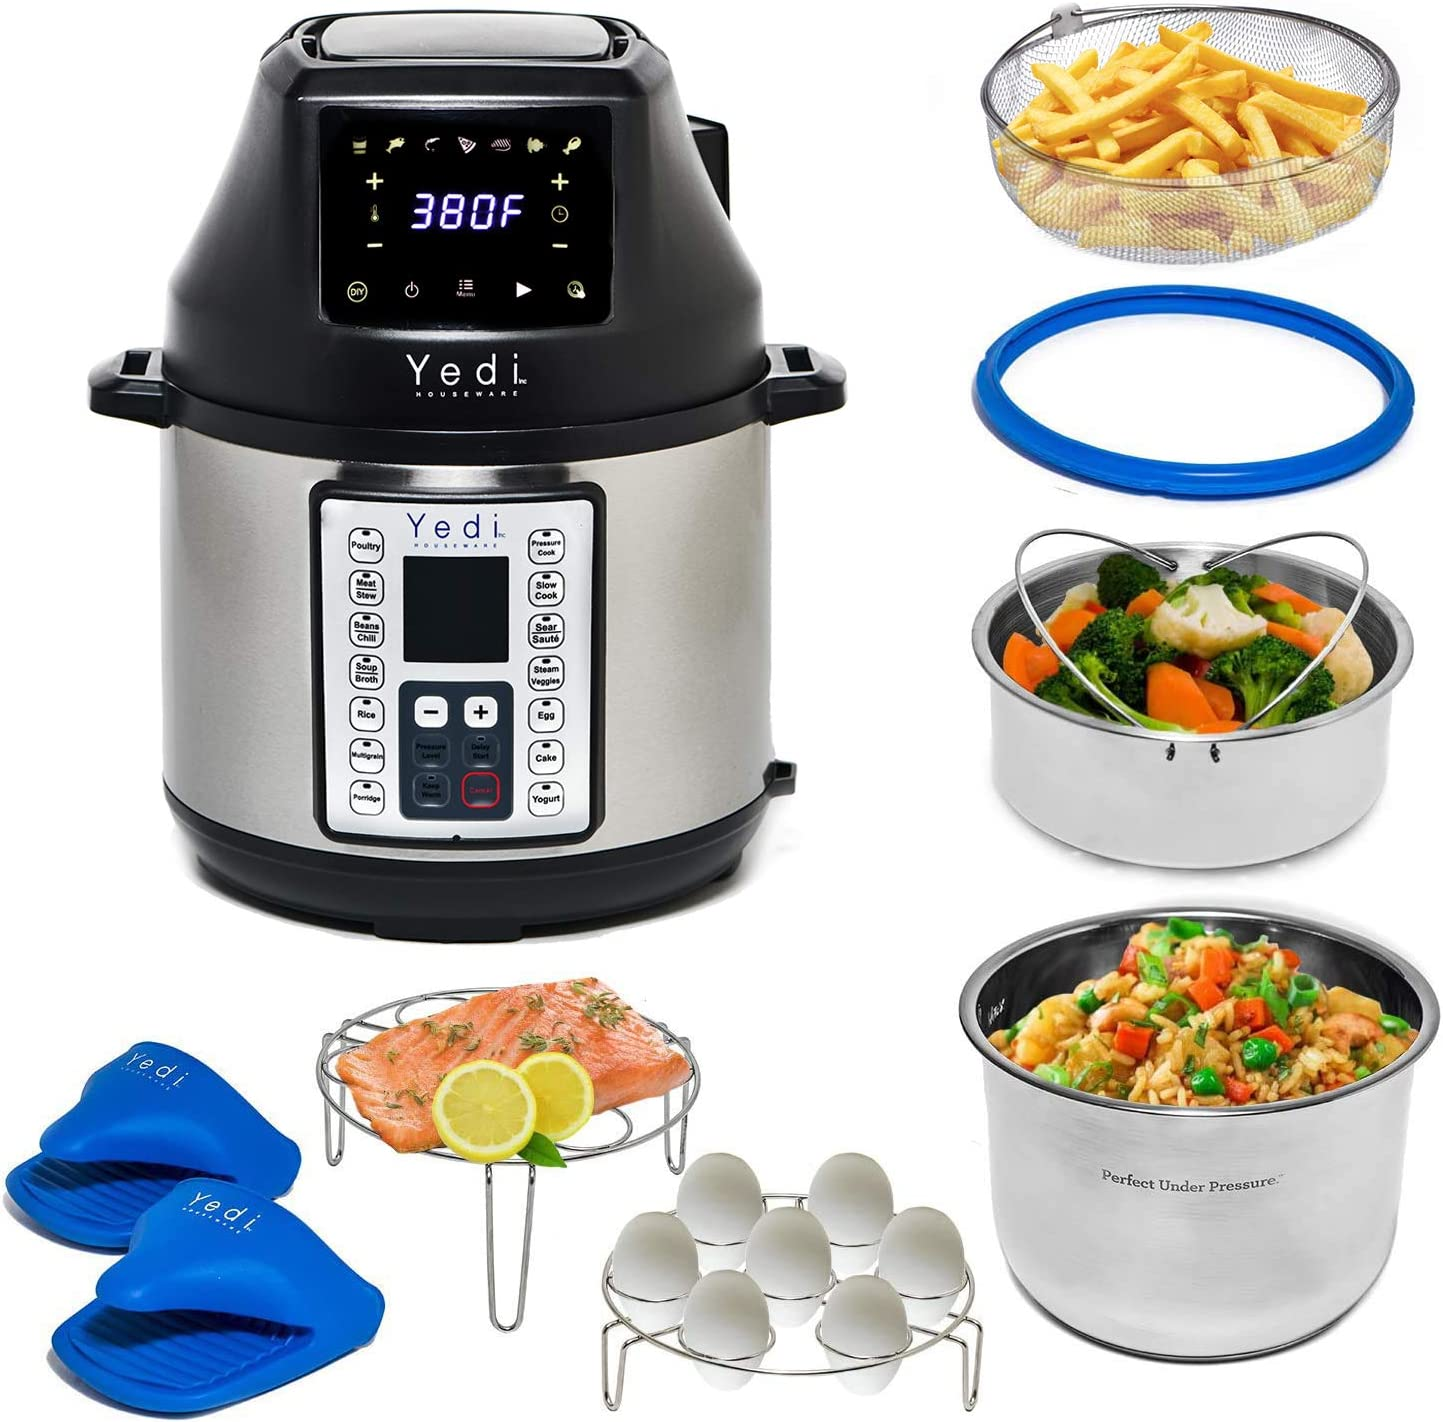 Yedi Tango, 2-in-1 Air Fryer and Pressure Cooker, 6 Quart, with Deluxe Accessory kit